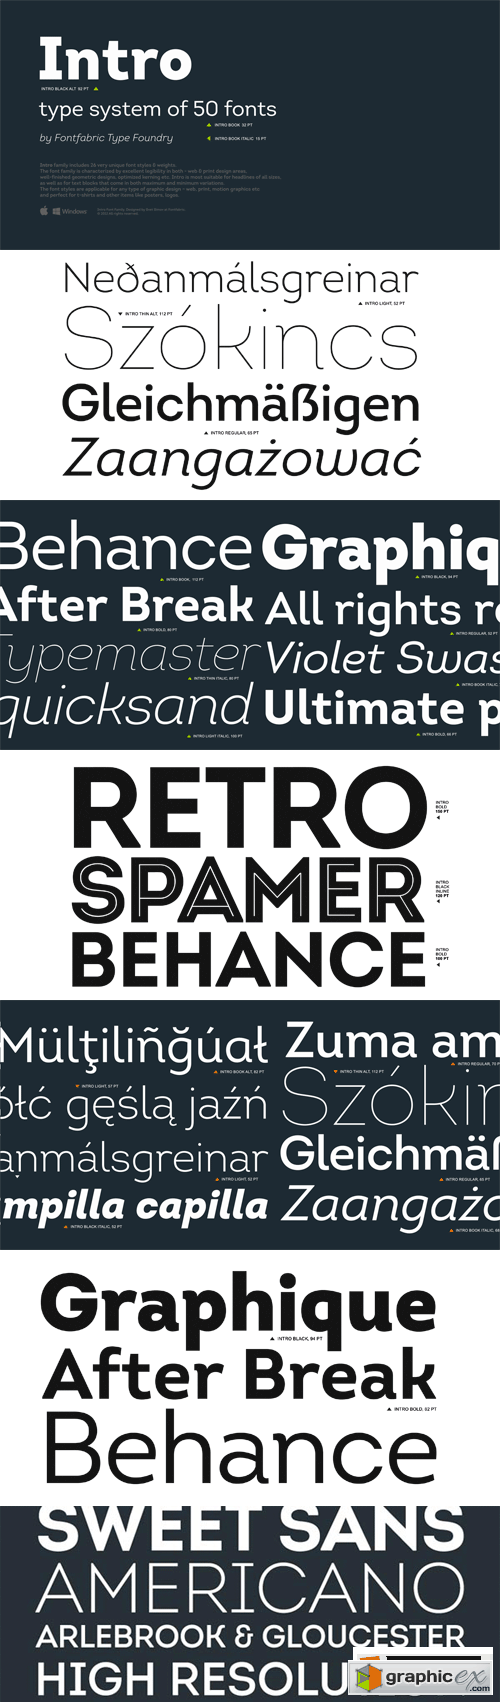 Intro Font Family - 51 Fonts for $279